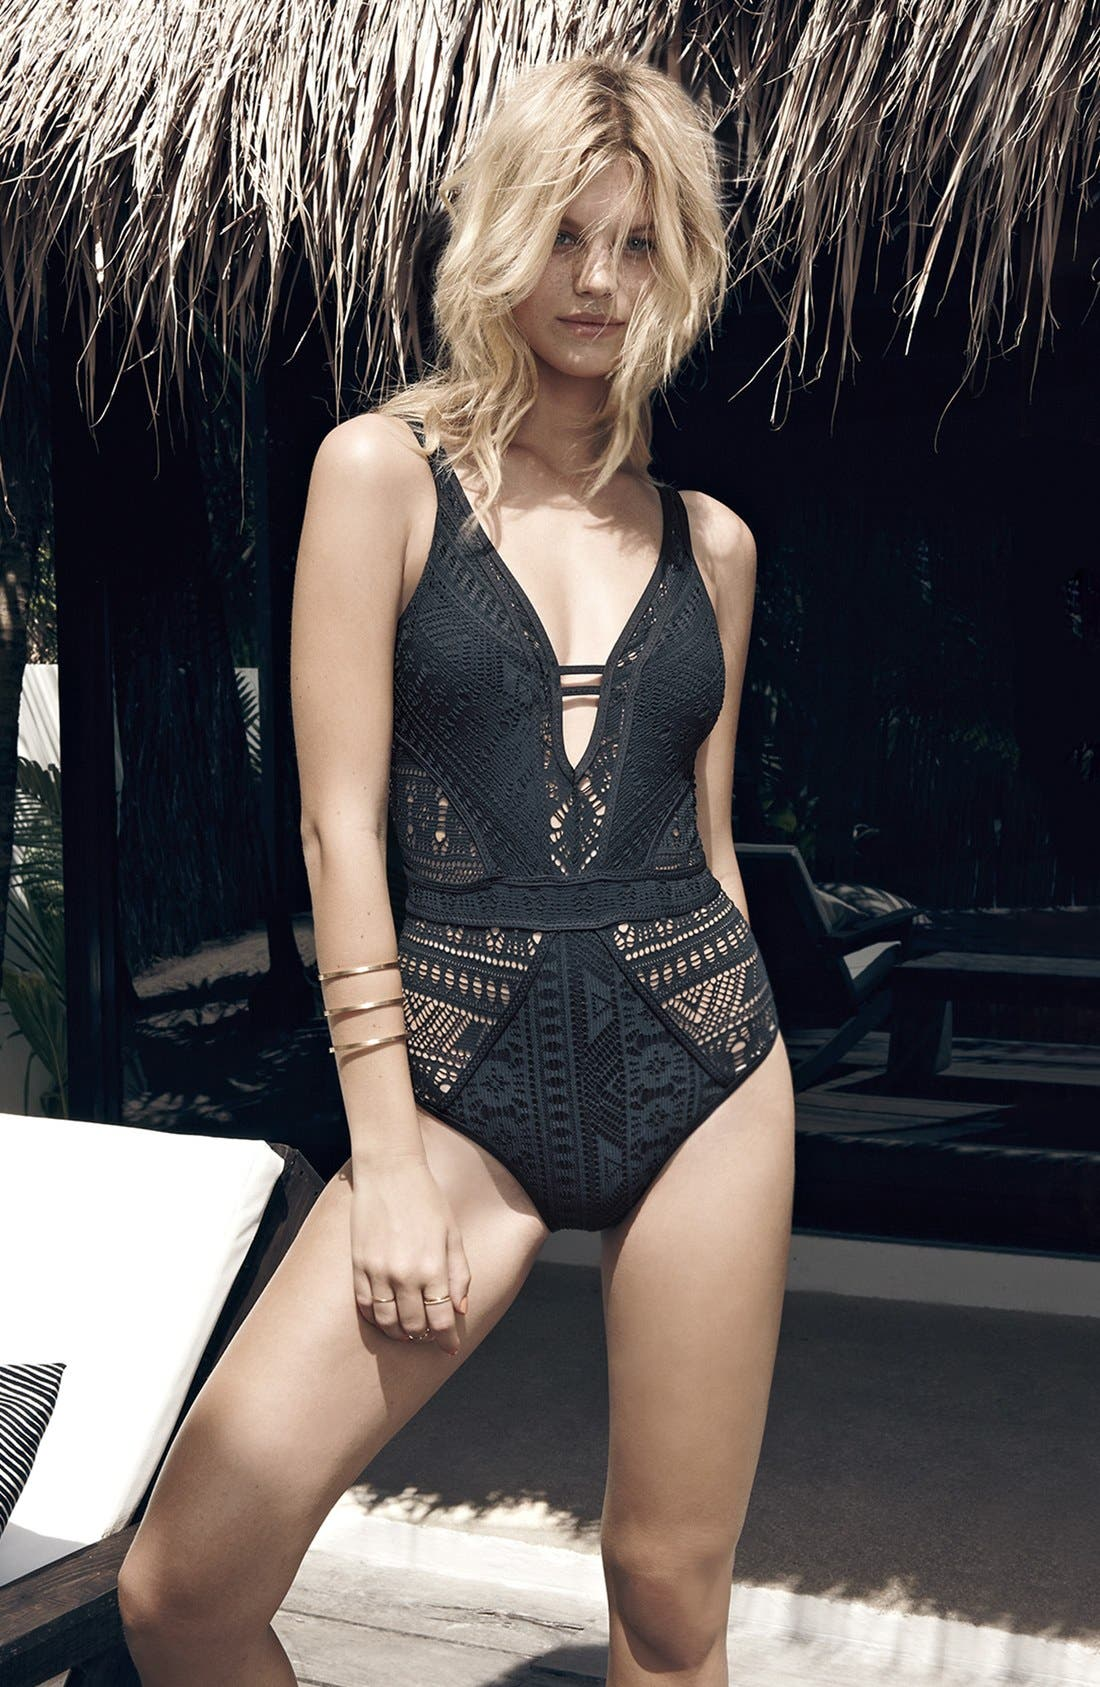 BECCA,                             'Show & Tell' Openwork One-Piece Swimsuit,                             Alternate thumbnail 3, color,                             001